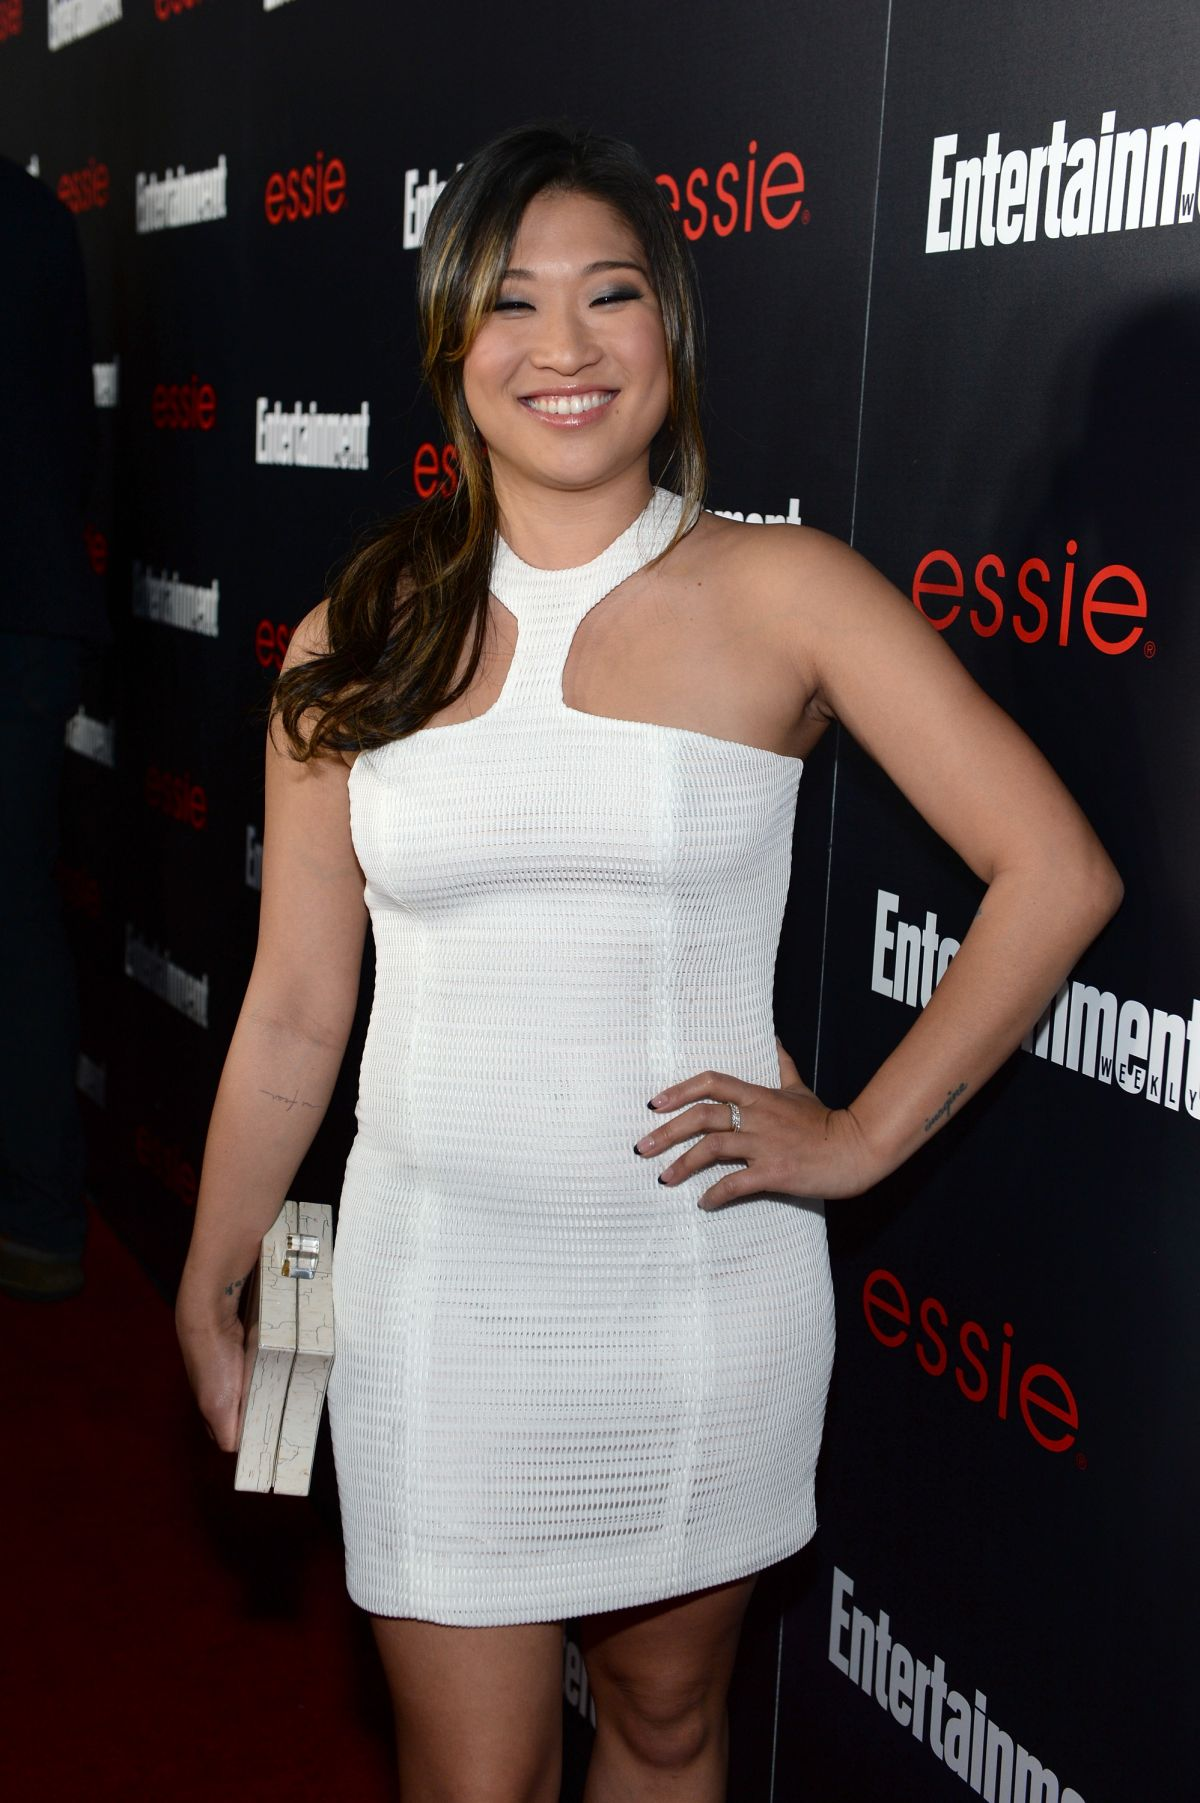 JENNA USHKOWITZ at Entertainment Weekly Celebration Honoring SAG Awards Nominees